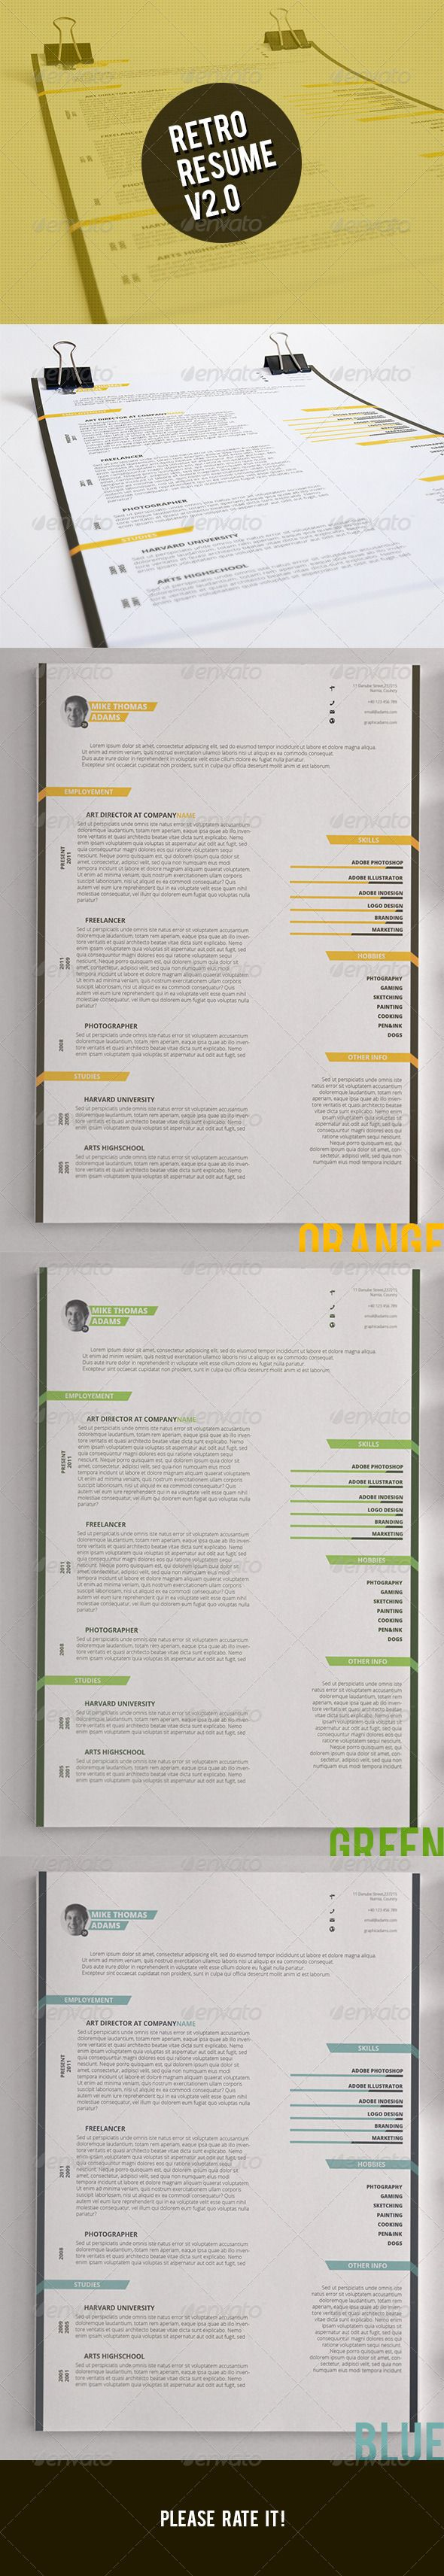 Retro Resume V20 13 best Job Search